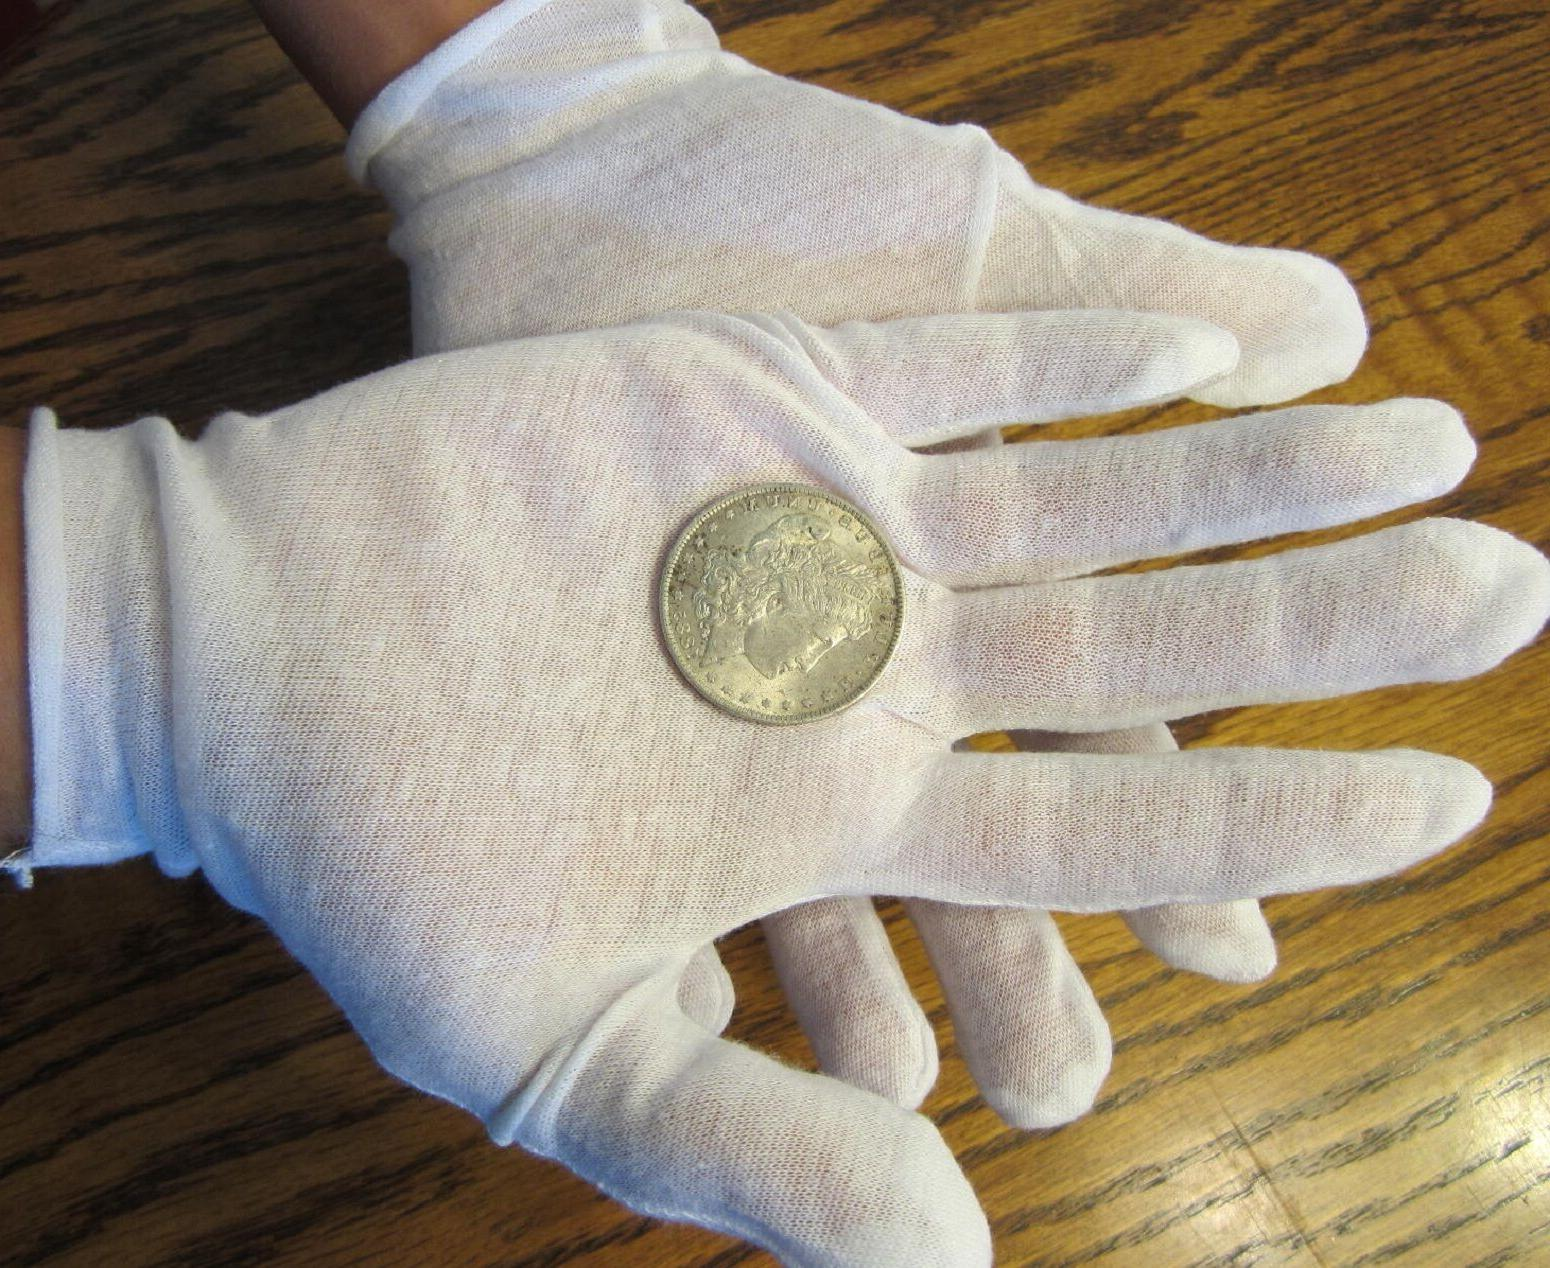 20 PAIRS WHITE COIN INSPECTION GLOVES COTTON LISLE OR LINERS